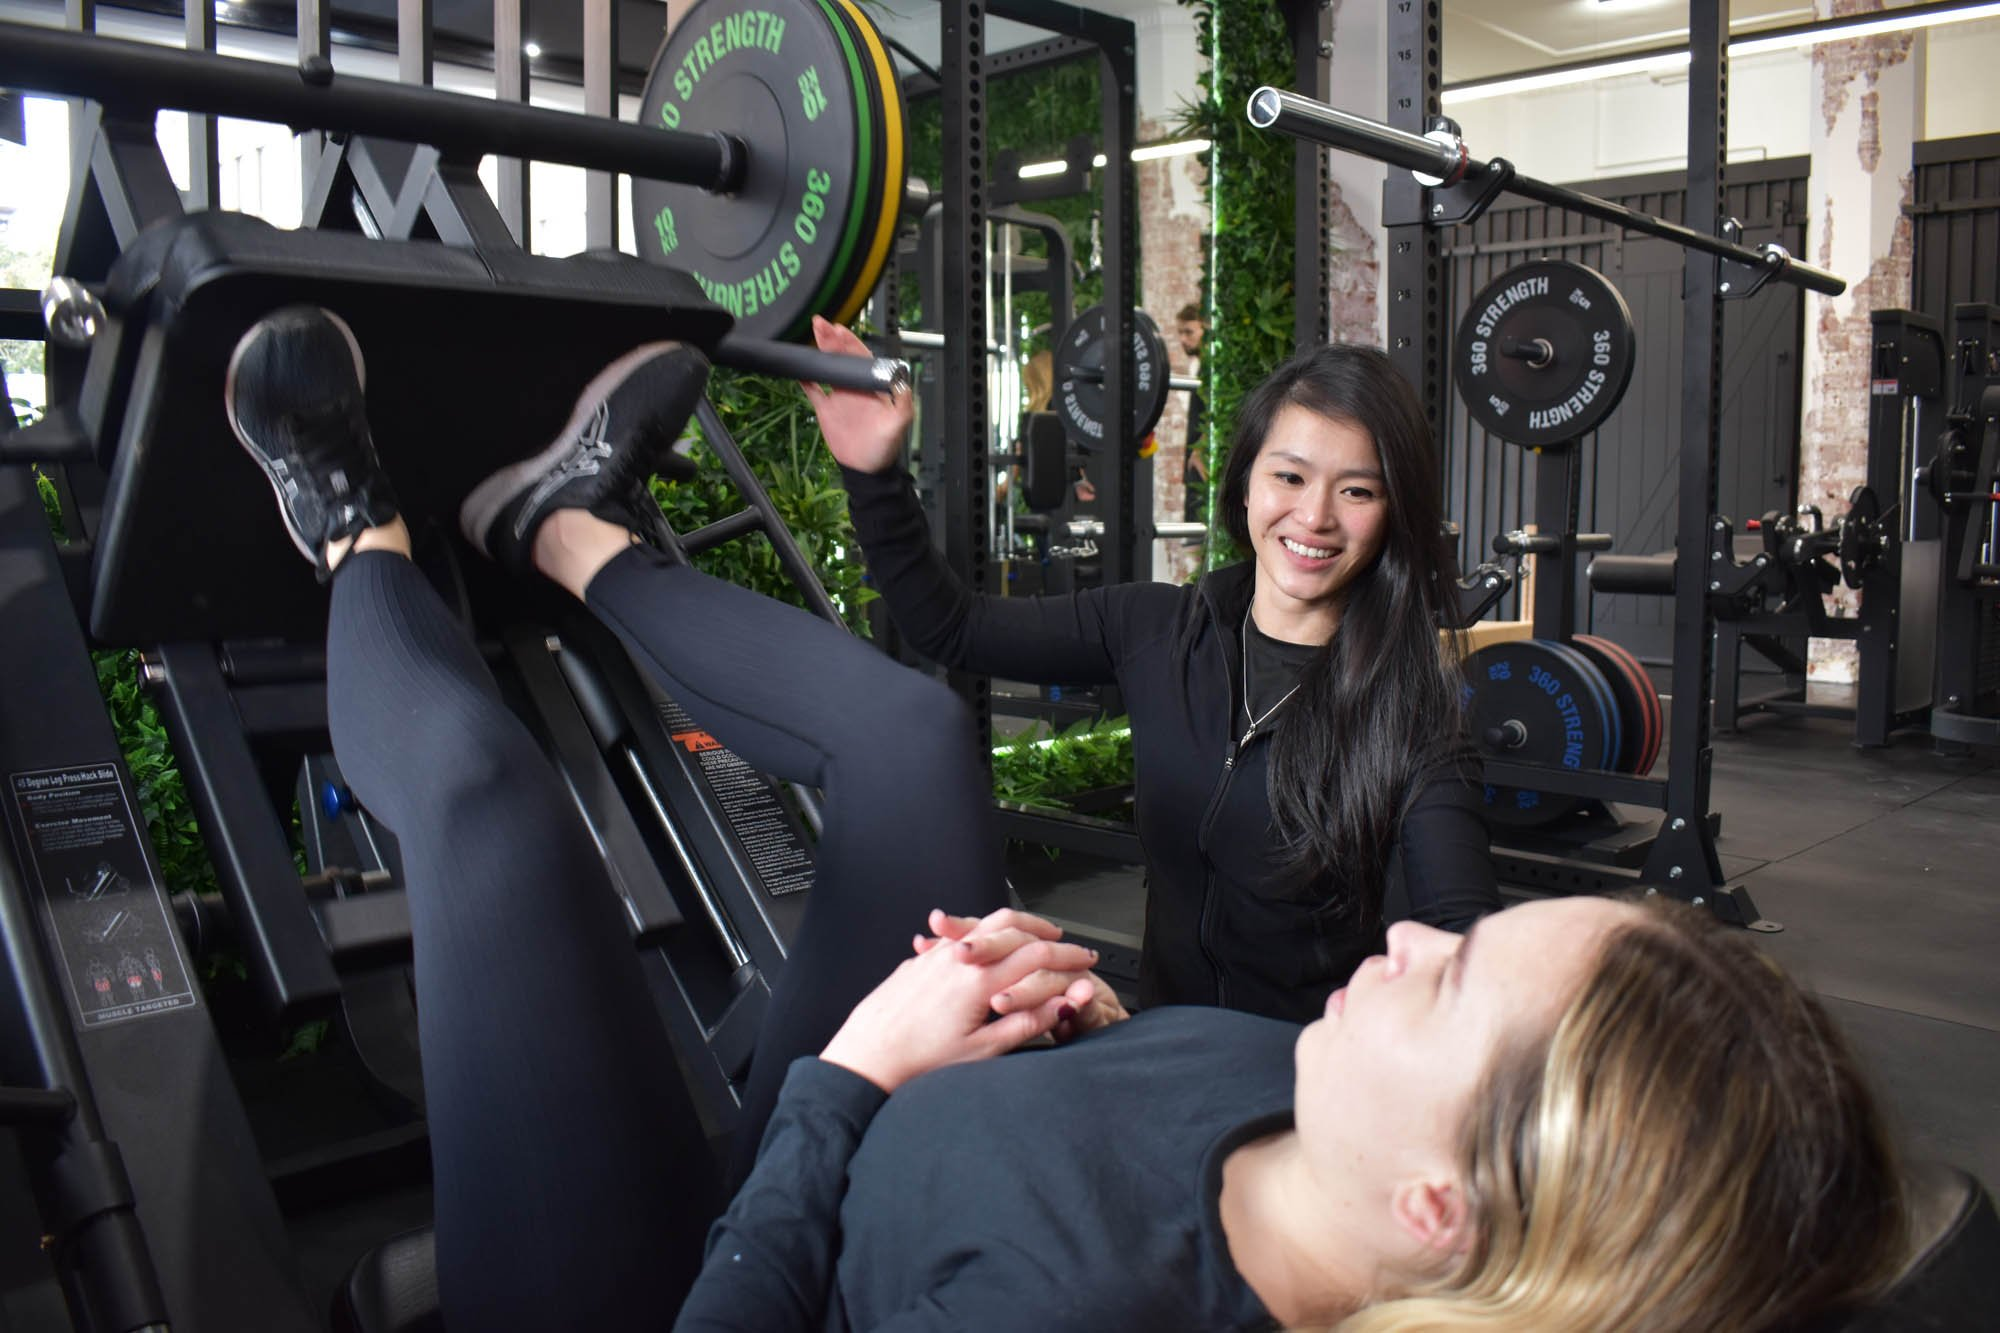 Physiotherapist working on a specialised training program with customer doing leg squat.